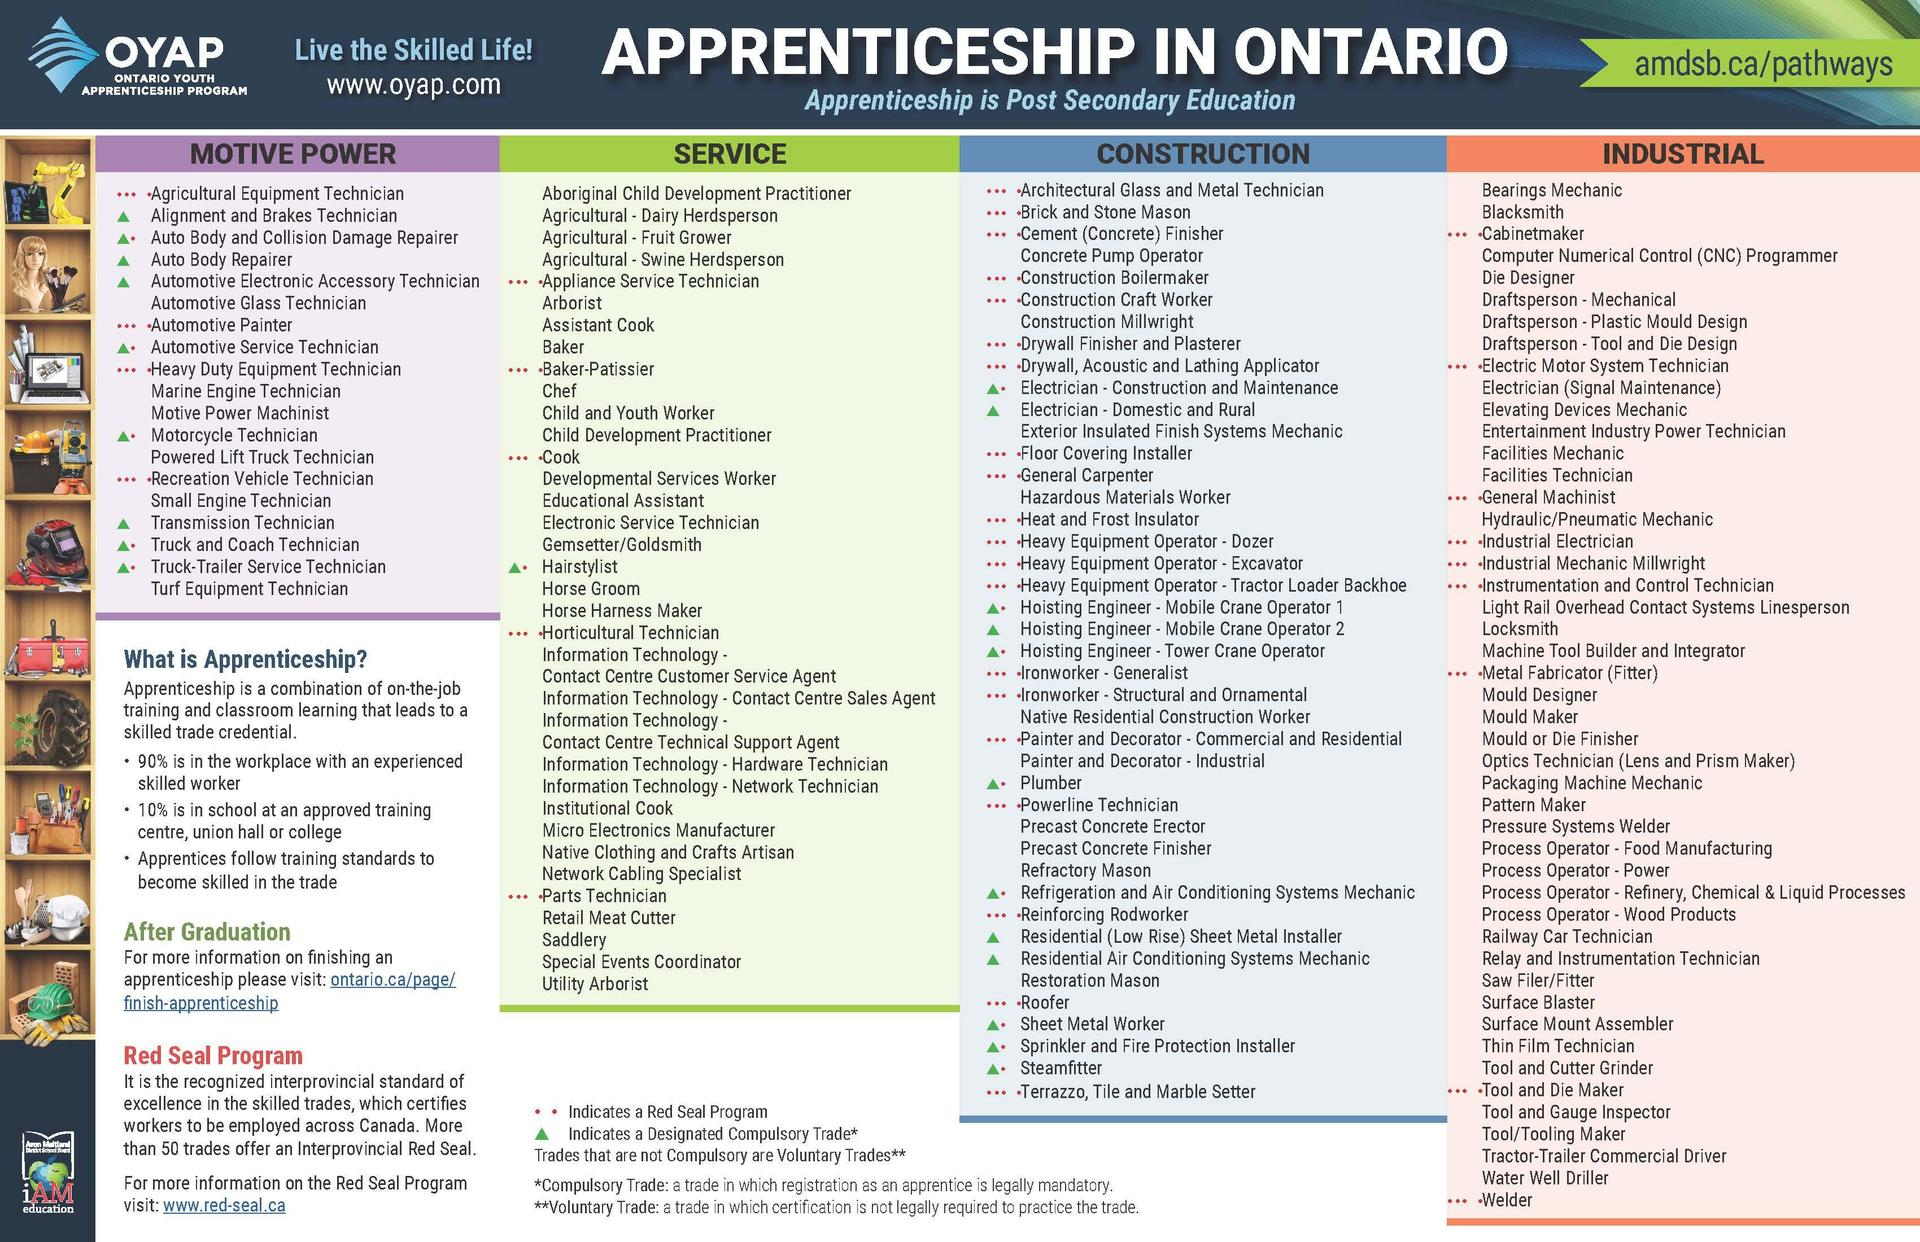 Poster with a wide variety of apprenticeship trades listed. Follow link for accessible PDF version.